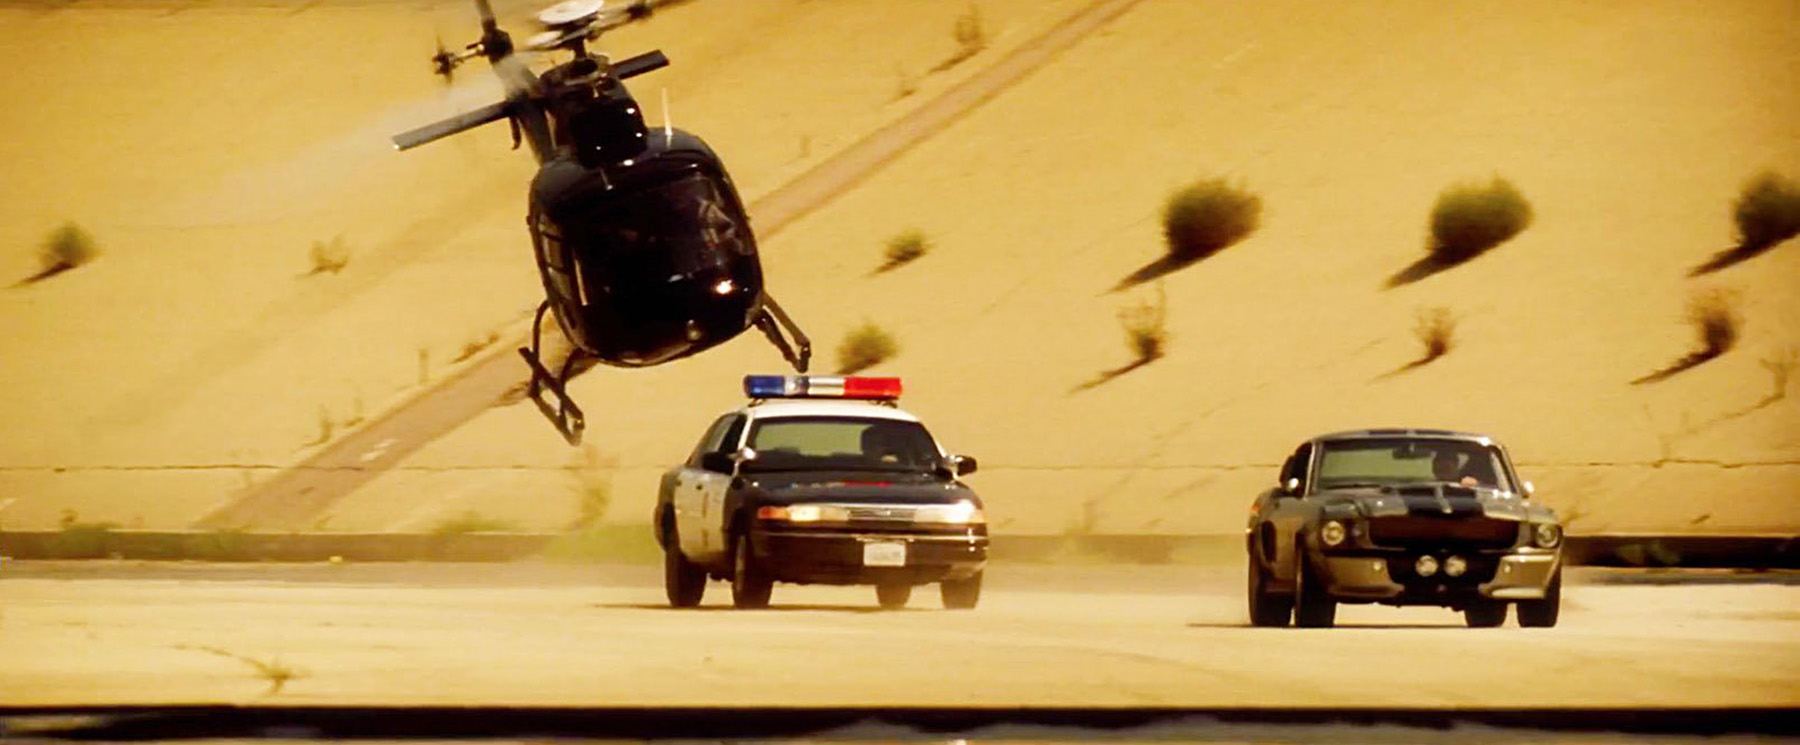 gone in 60 seconds movie review